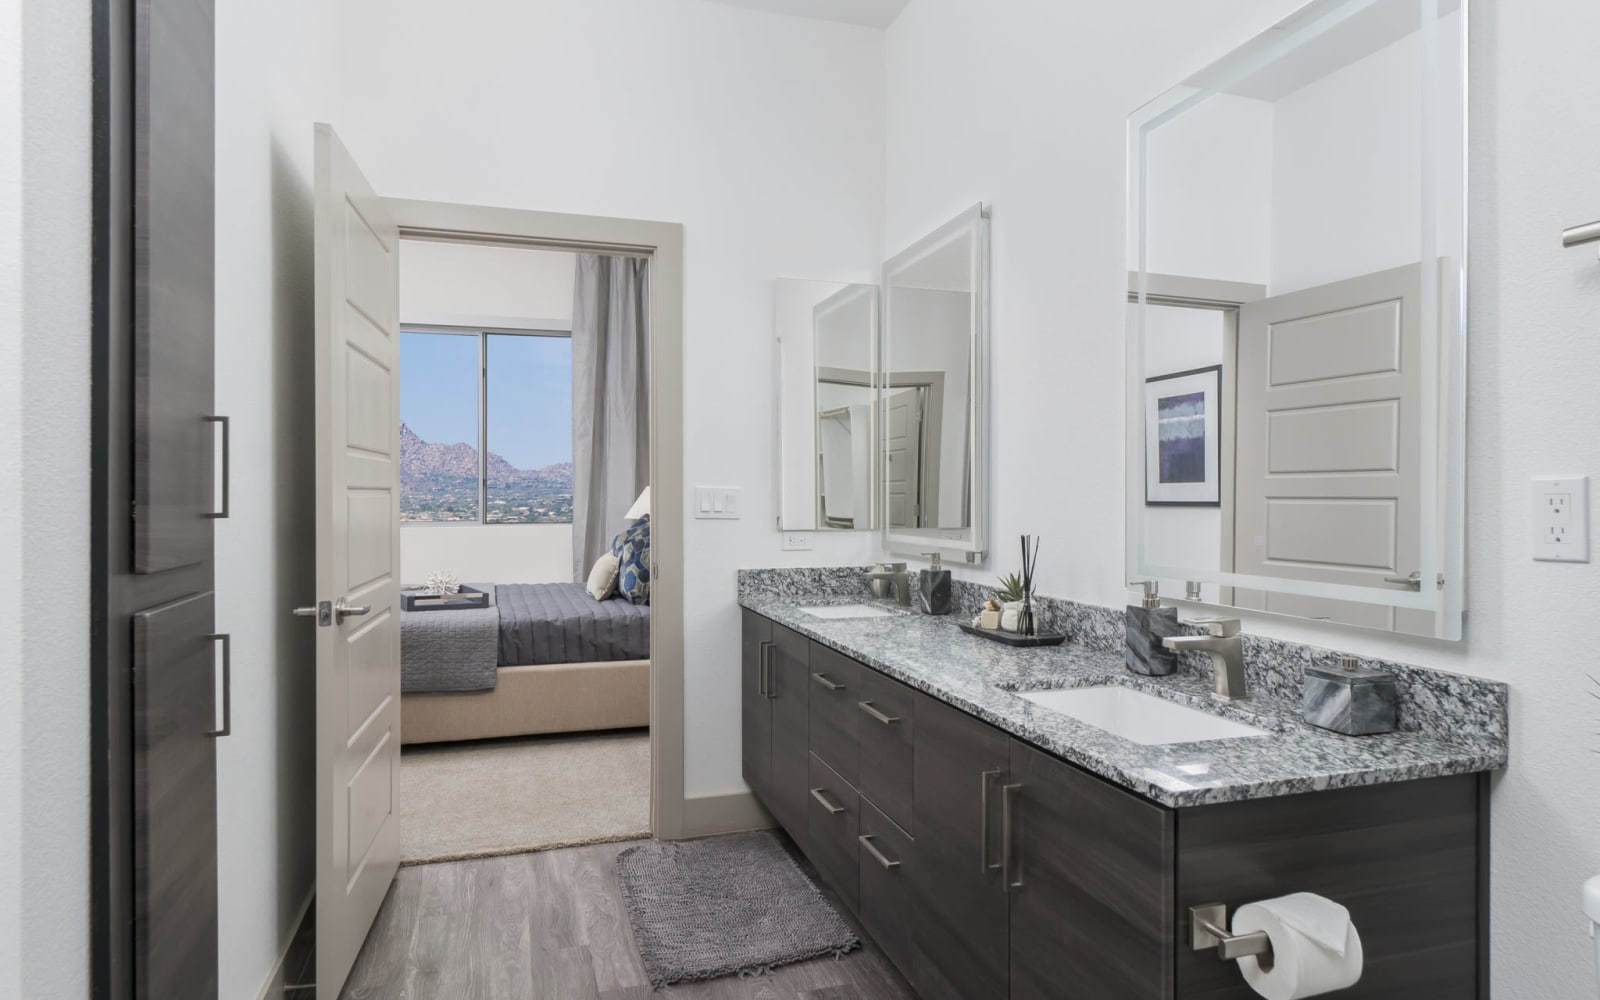 Granite counter tops with dual sinks in the bathroom at The District at Scottsdale in Scottsdale, Arizona